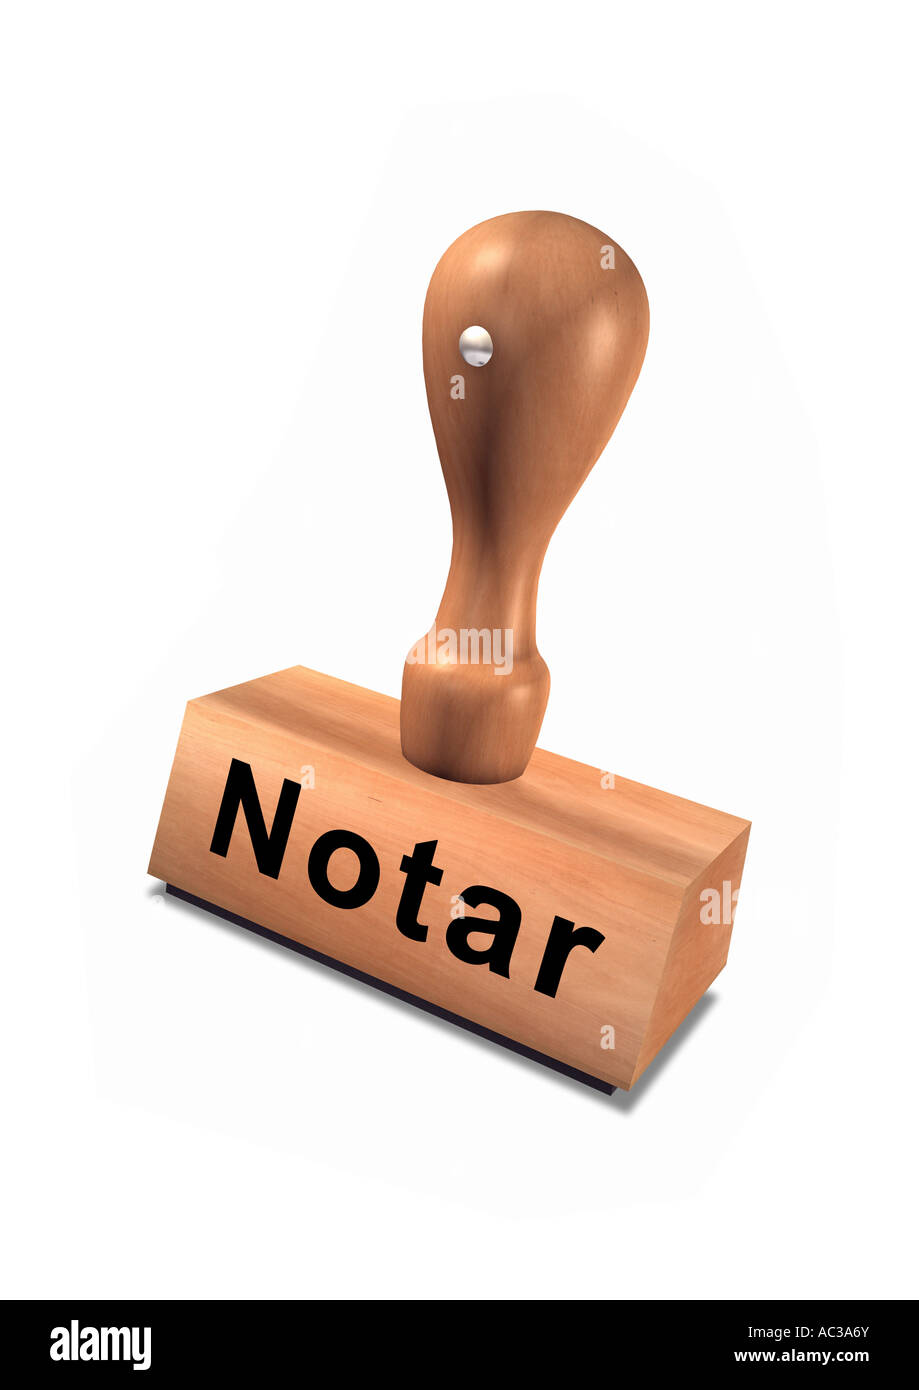 notary public german stamp Stempel Notar Stock Photo